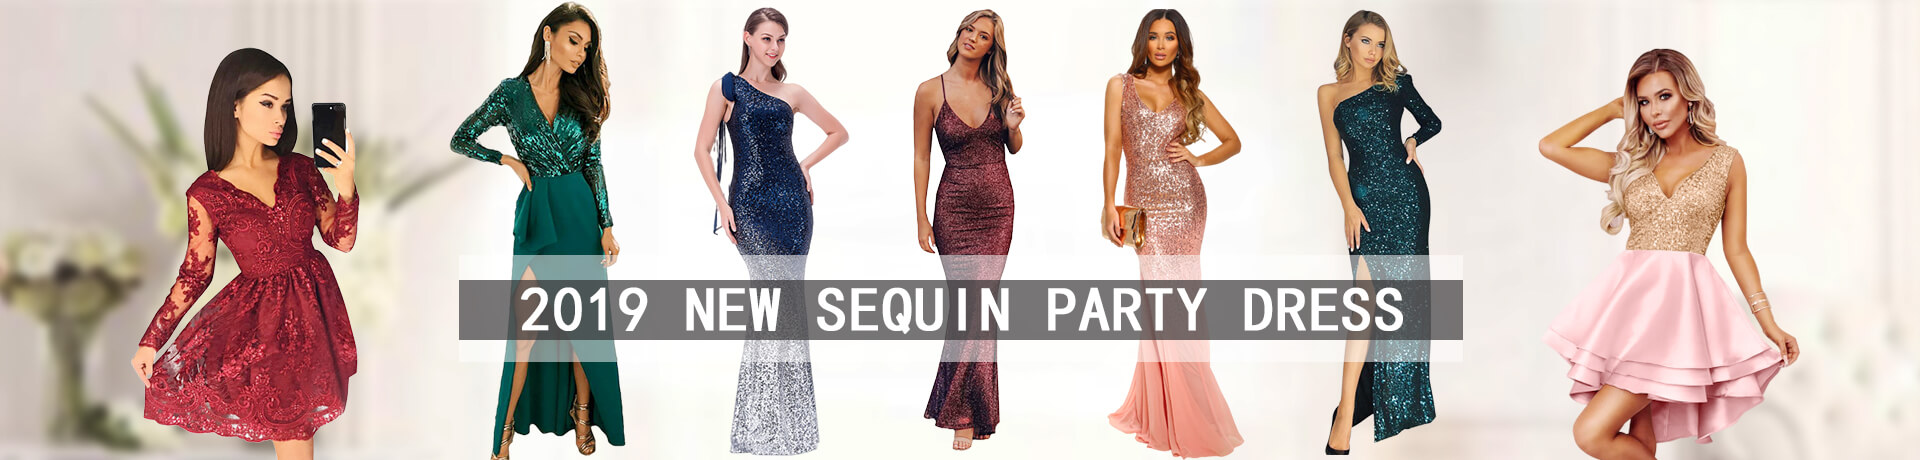 2019 New Sequin Party Dress